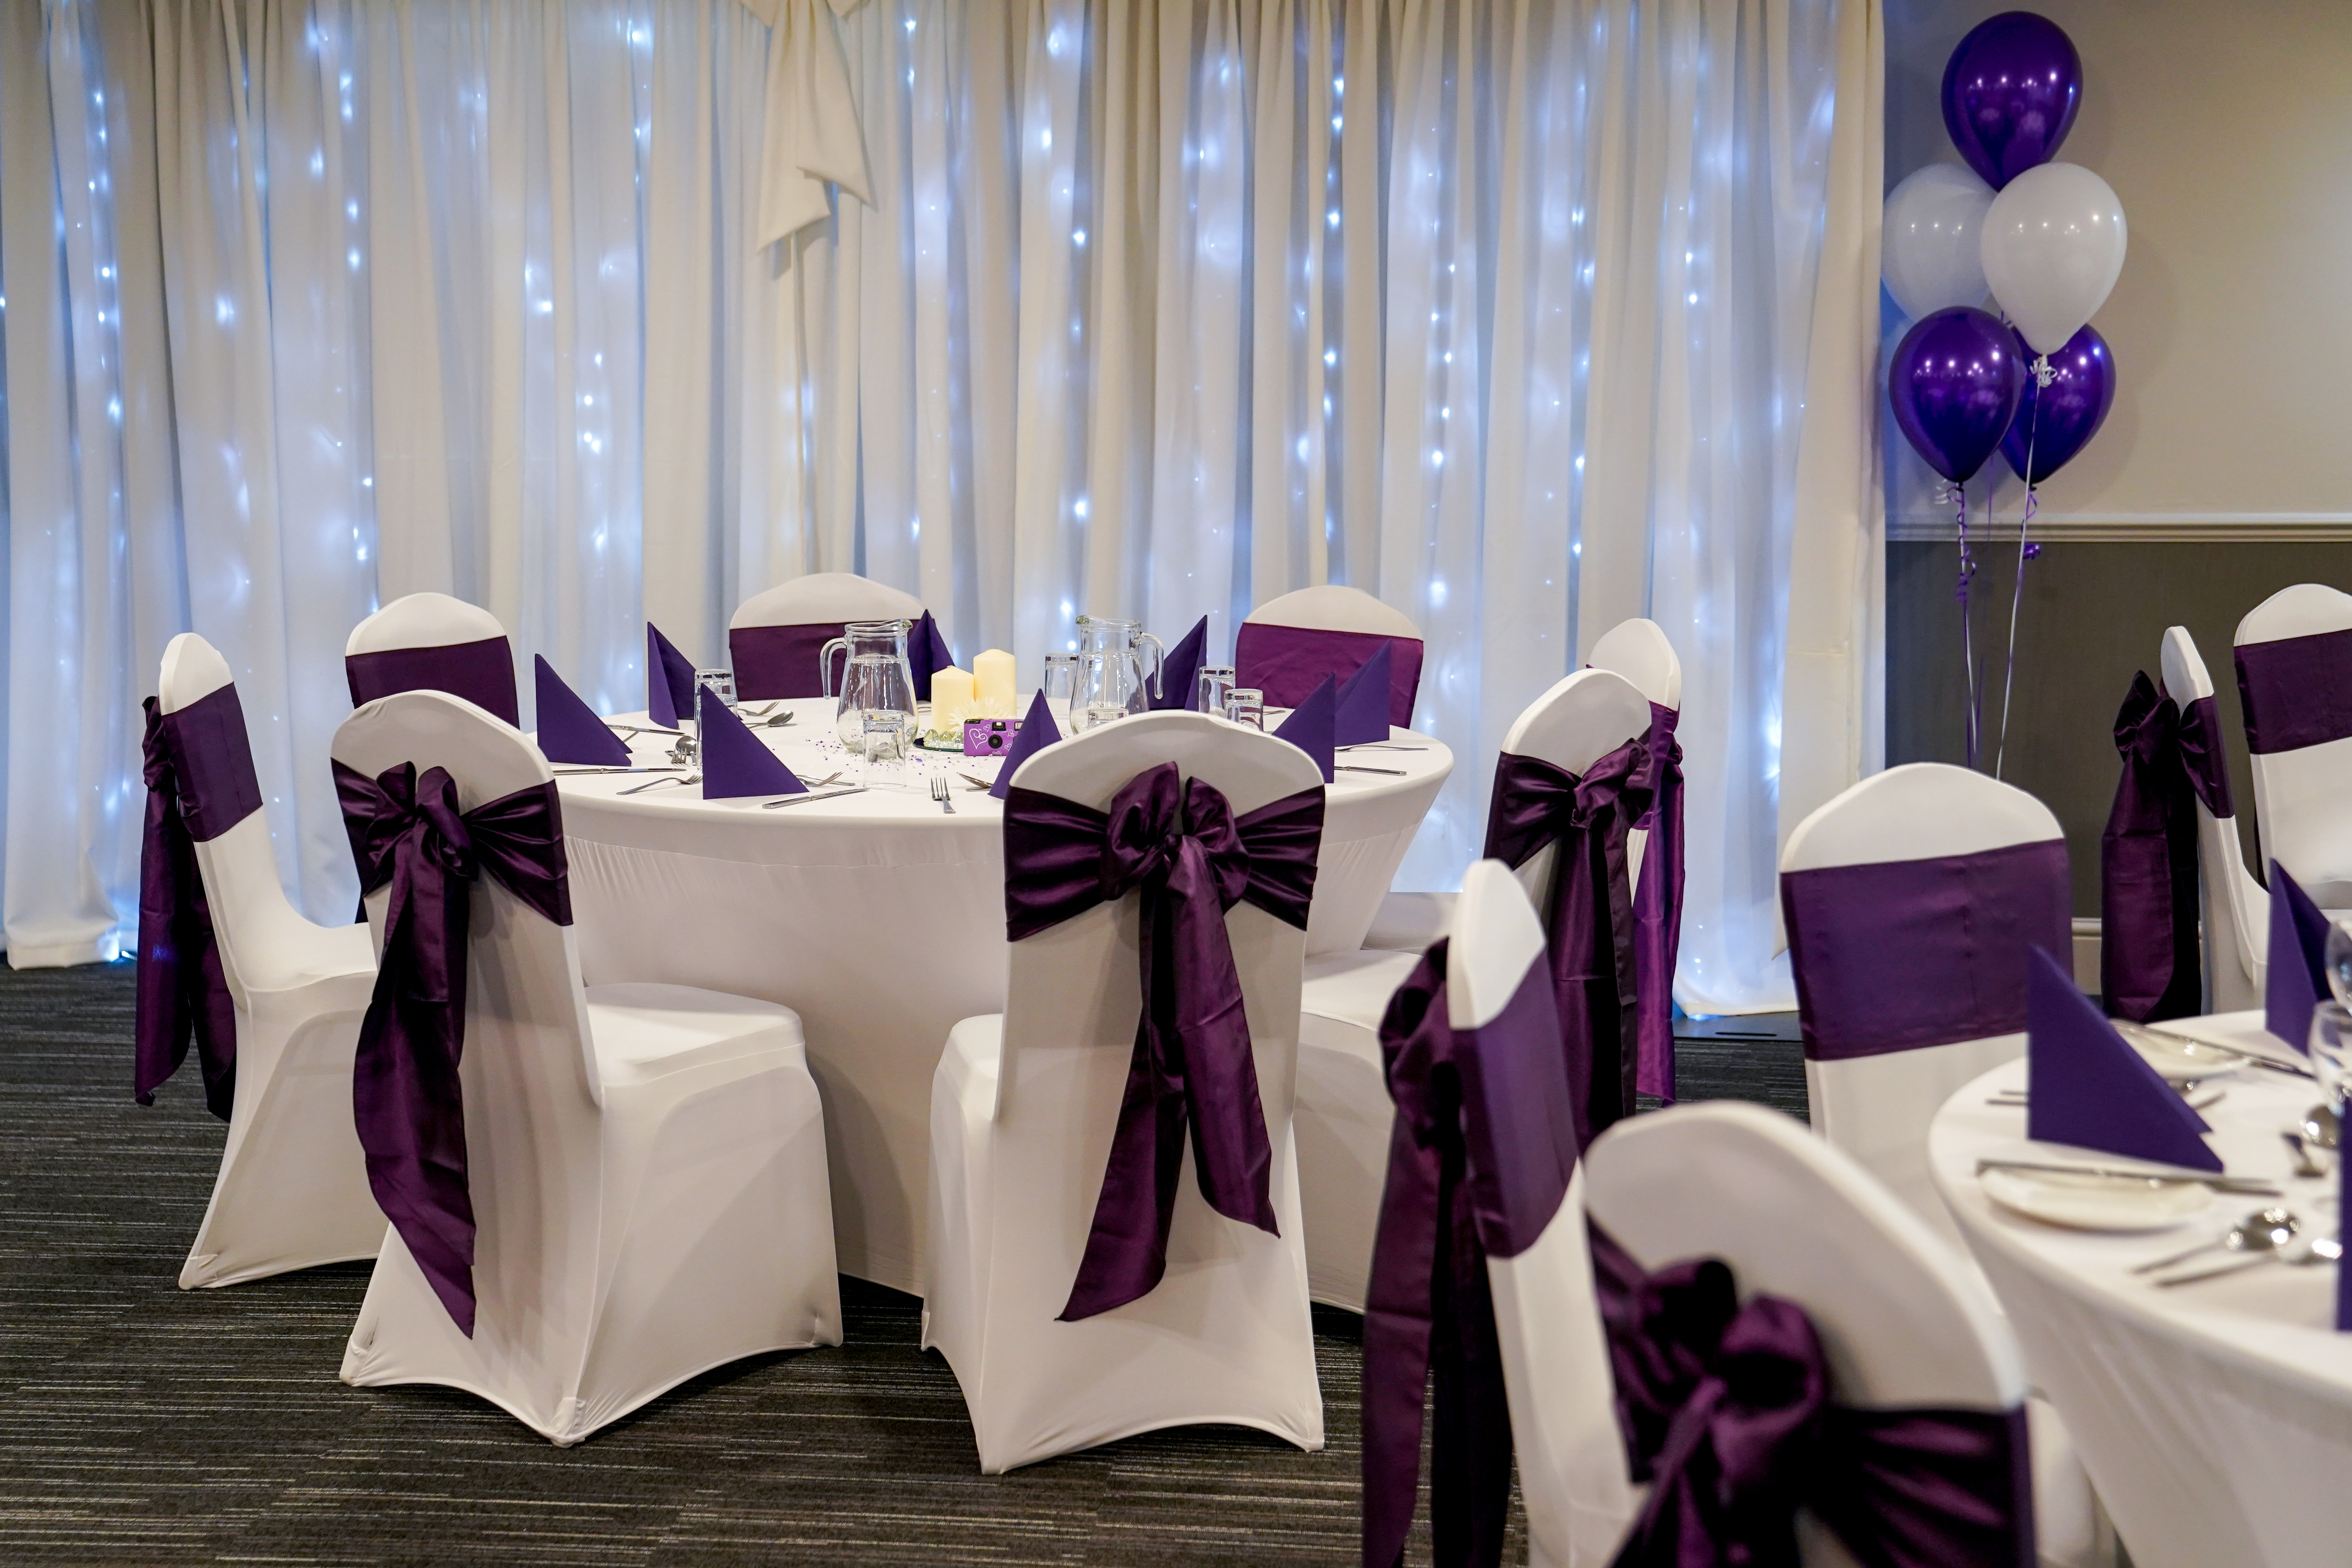 Add chair covers and our starlight backdrop